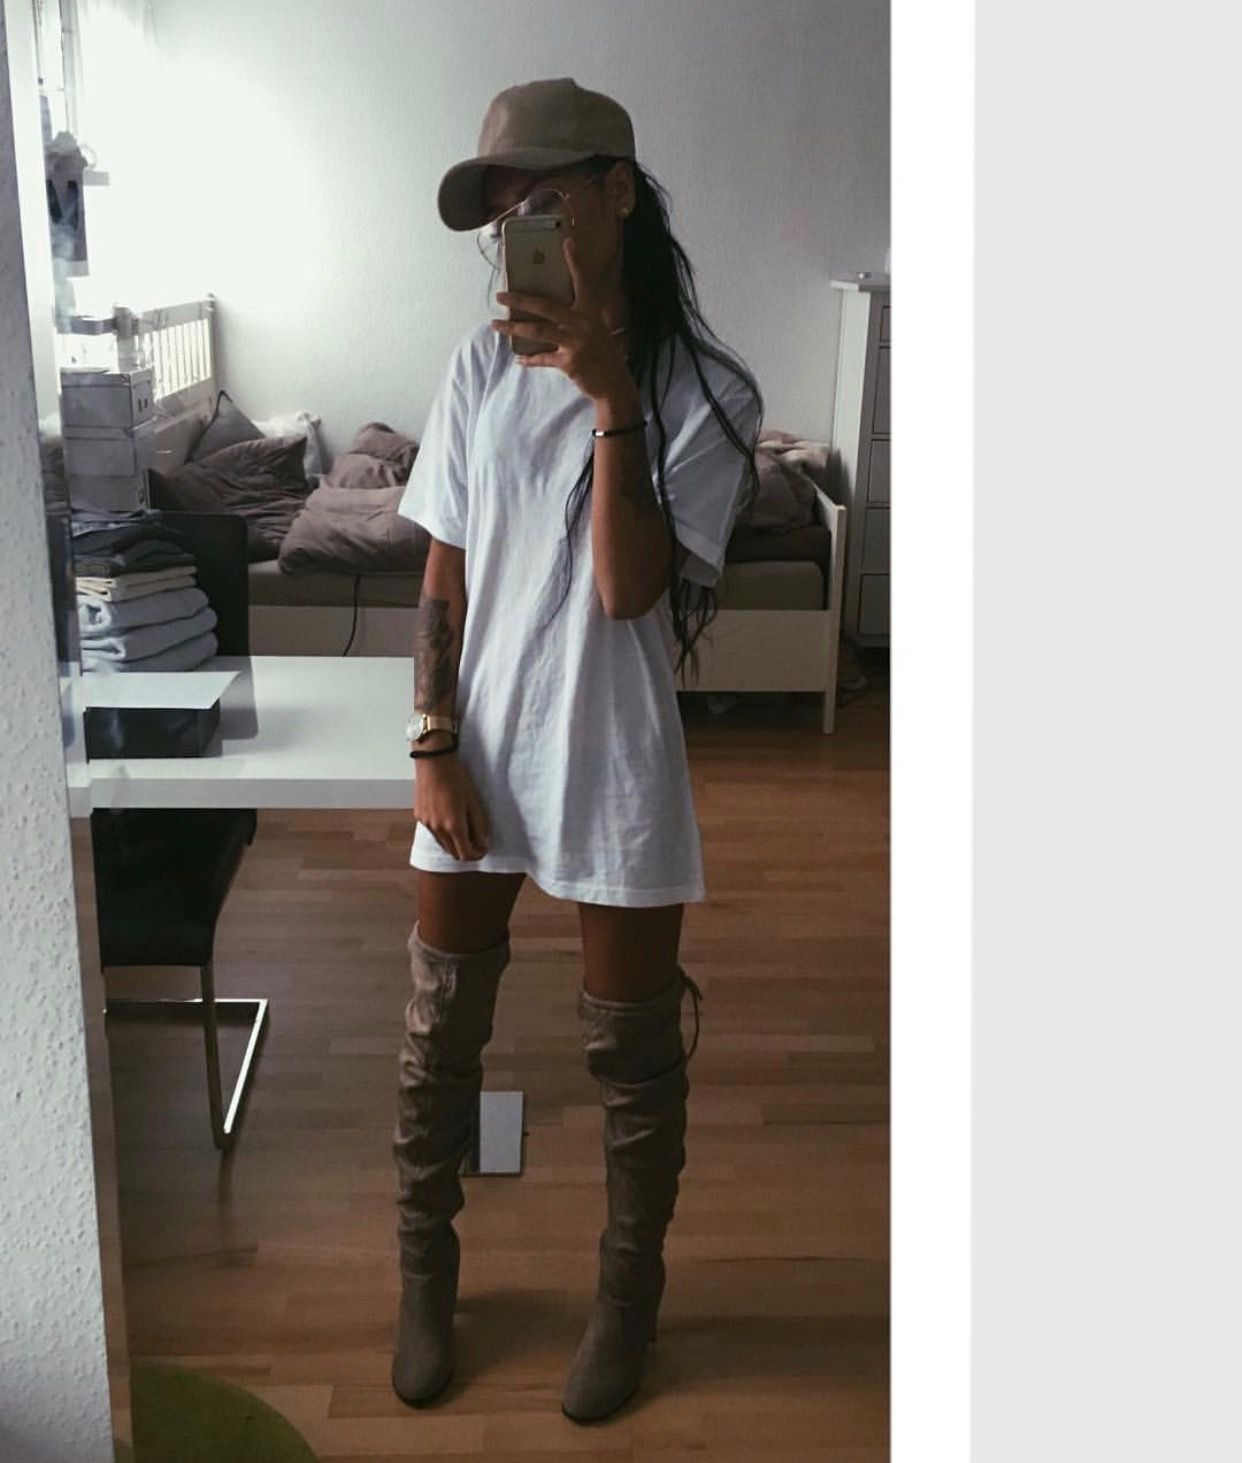 Skinny Pretty Thigh High Boots White Tshirt Tshirt Dress Upskirt Clothing And Accessories